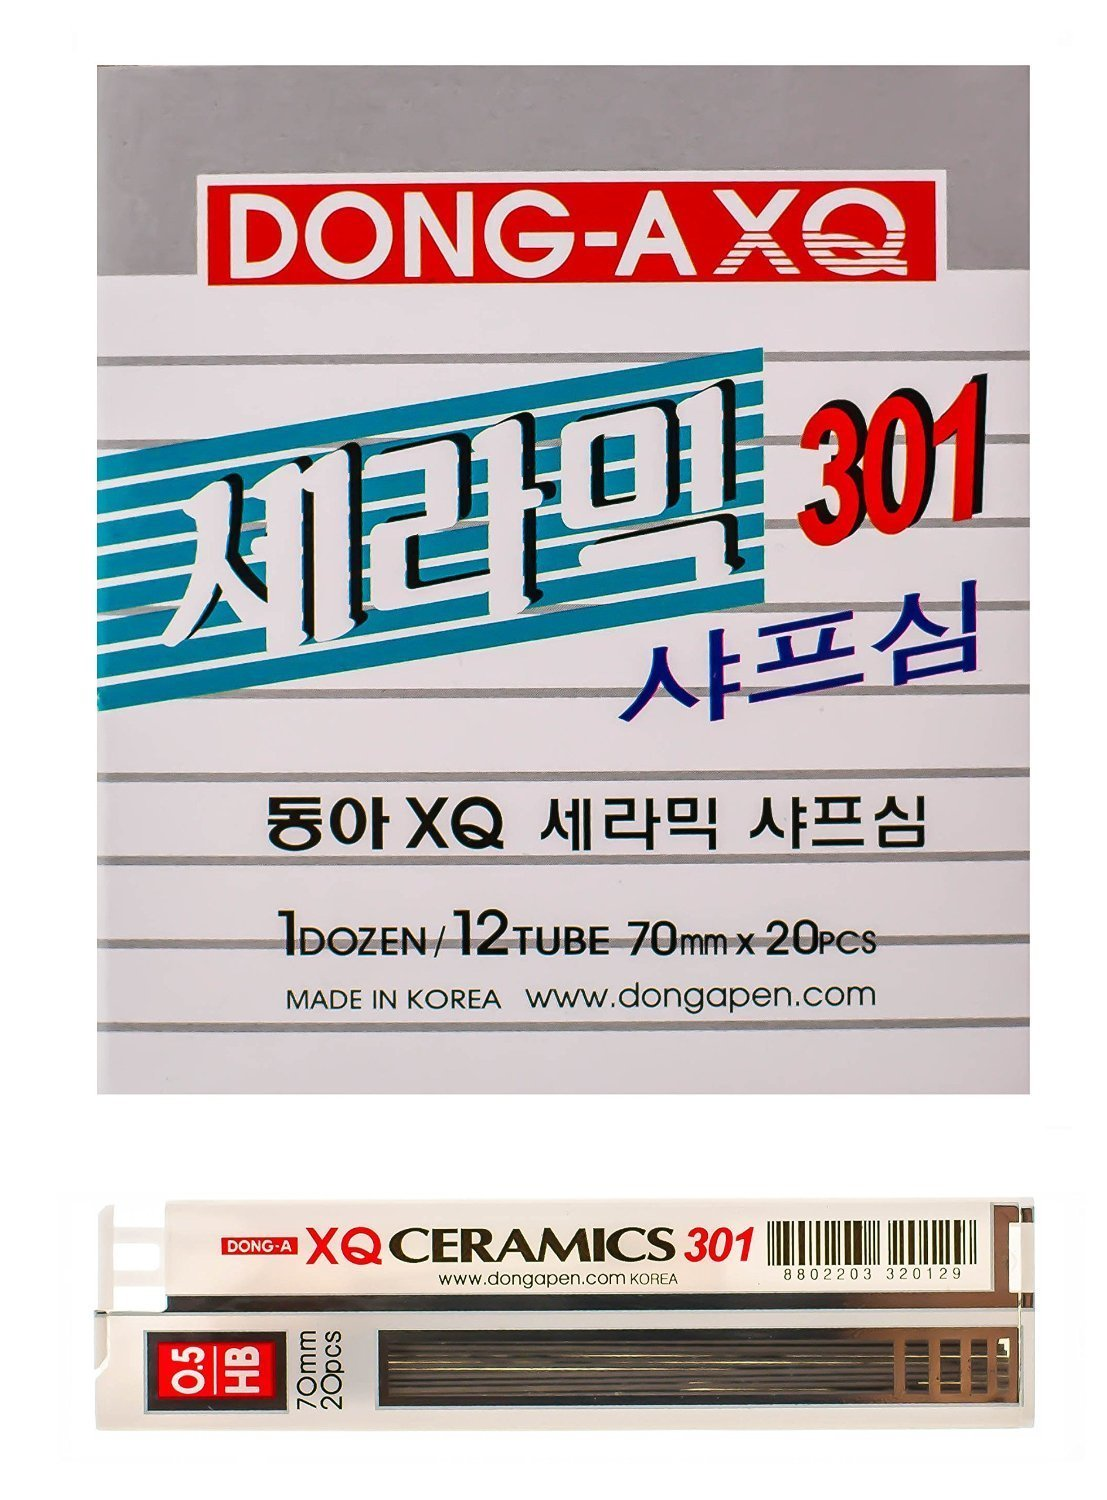 DONG-A XQ Ceramics II Lead Refill, 0.5mm, HB, 240 Pieces of Lead